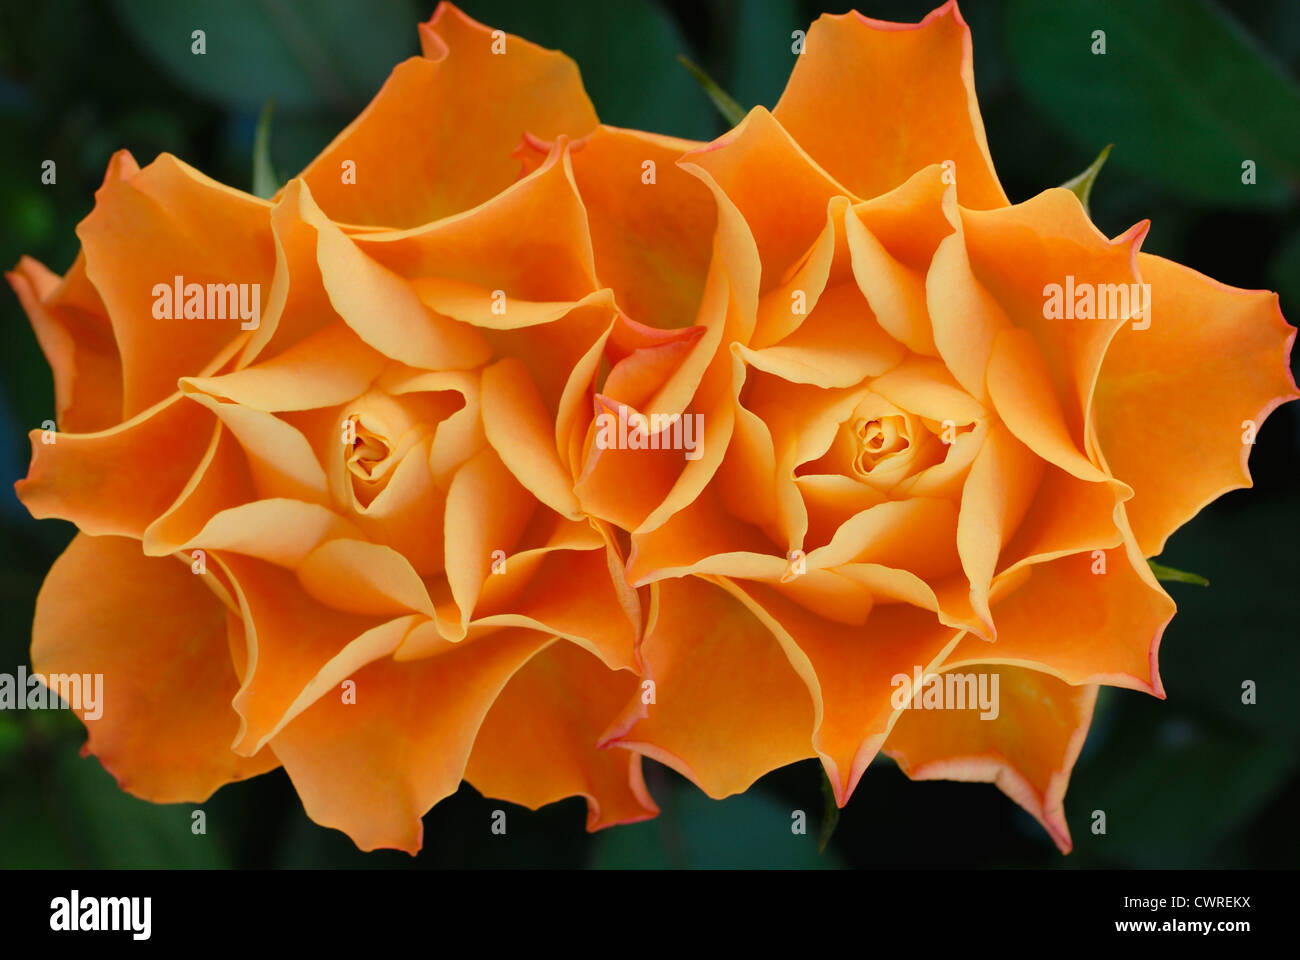 Rosa, Rose, two symmetric orange coloured flowers beside each other touching against a green background. - Stock Image